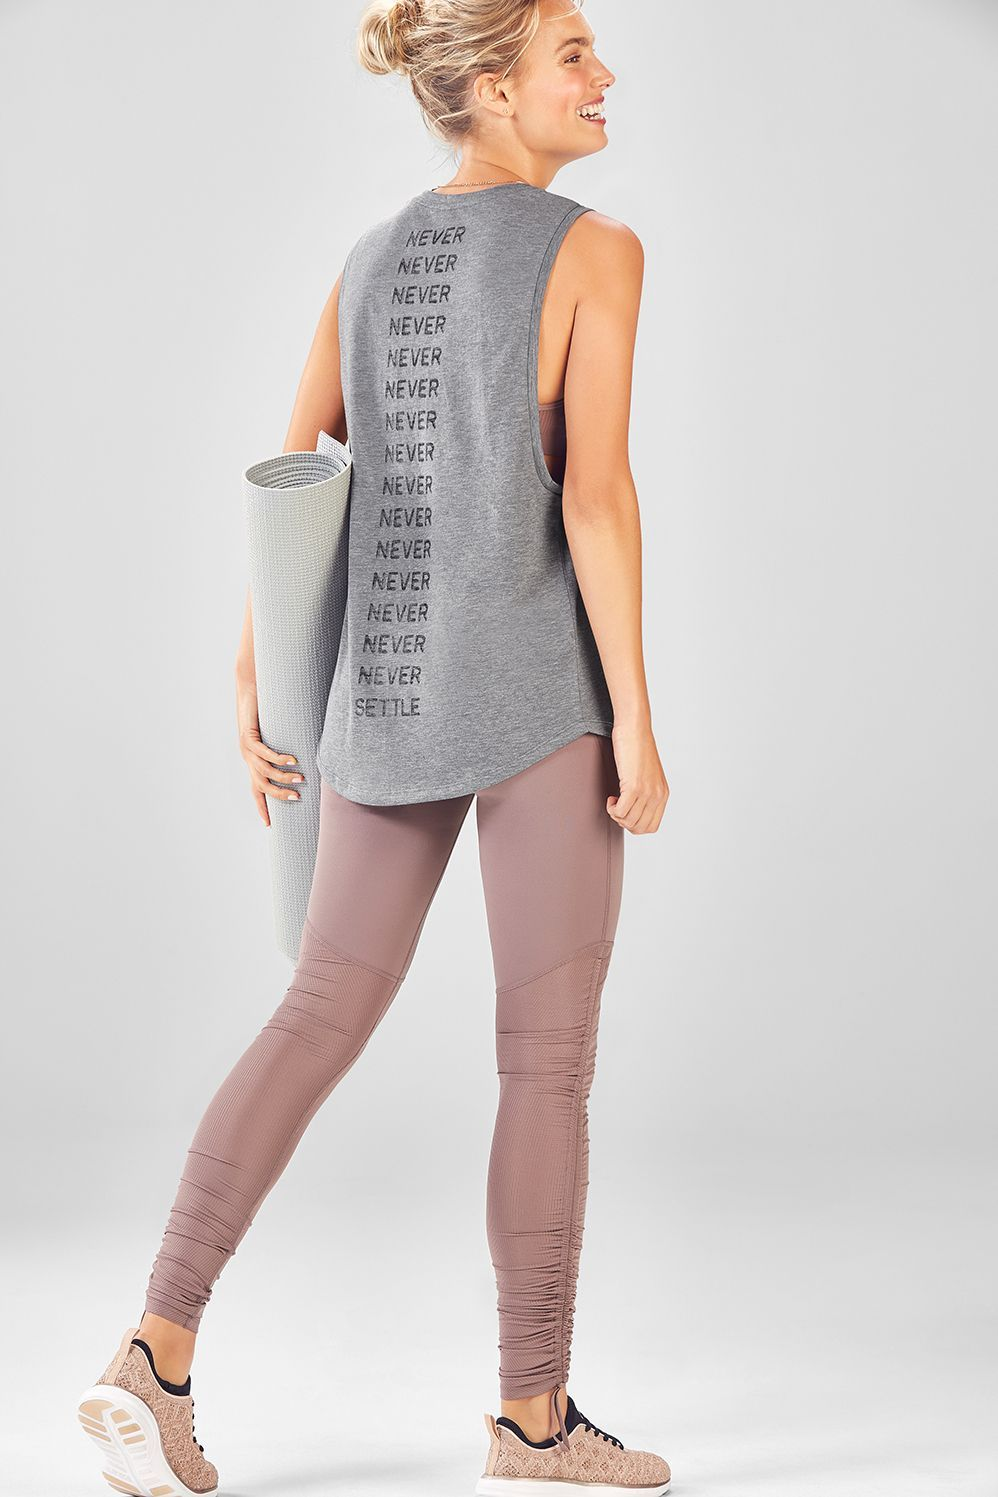 b01760e10e3 Rocca 3-Piece Outfit   What's in my closet   Athletic outfits ...